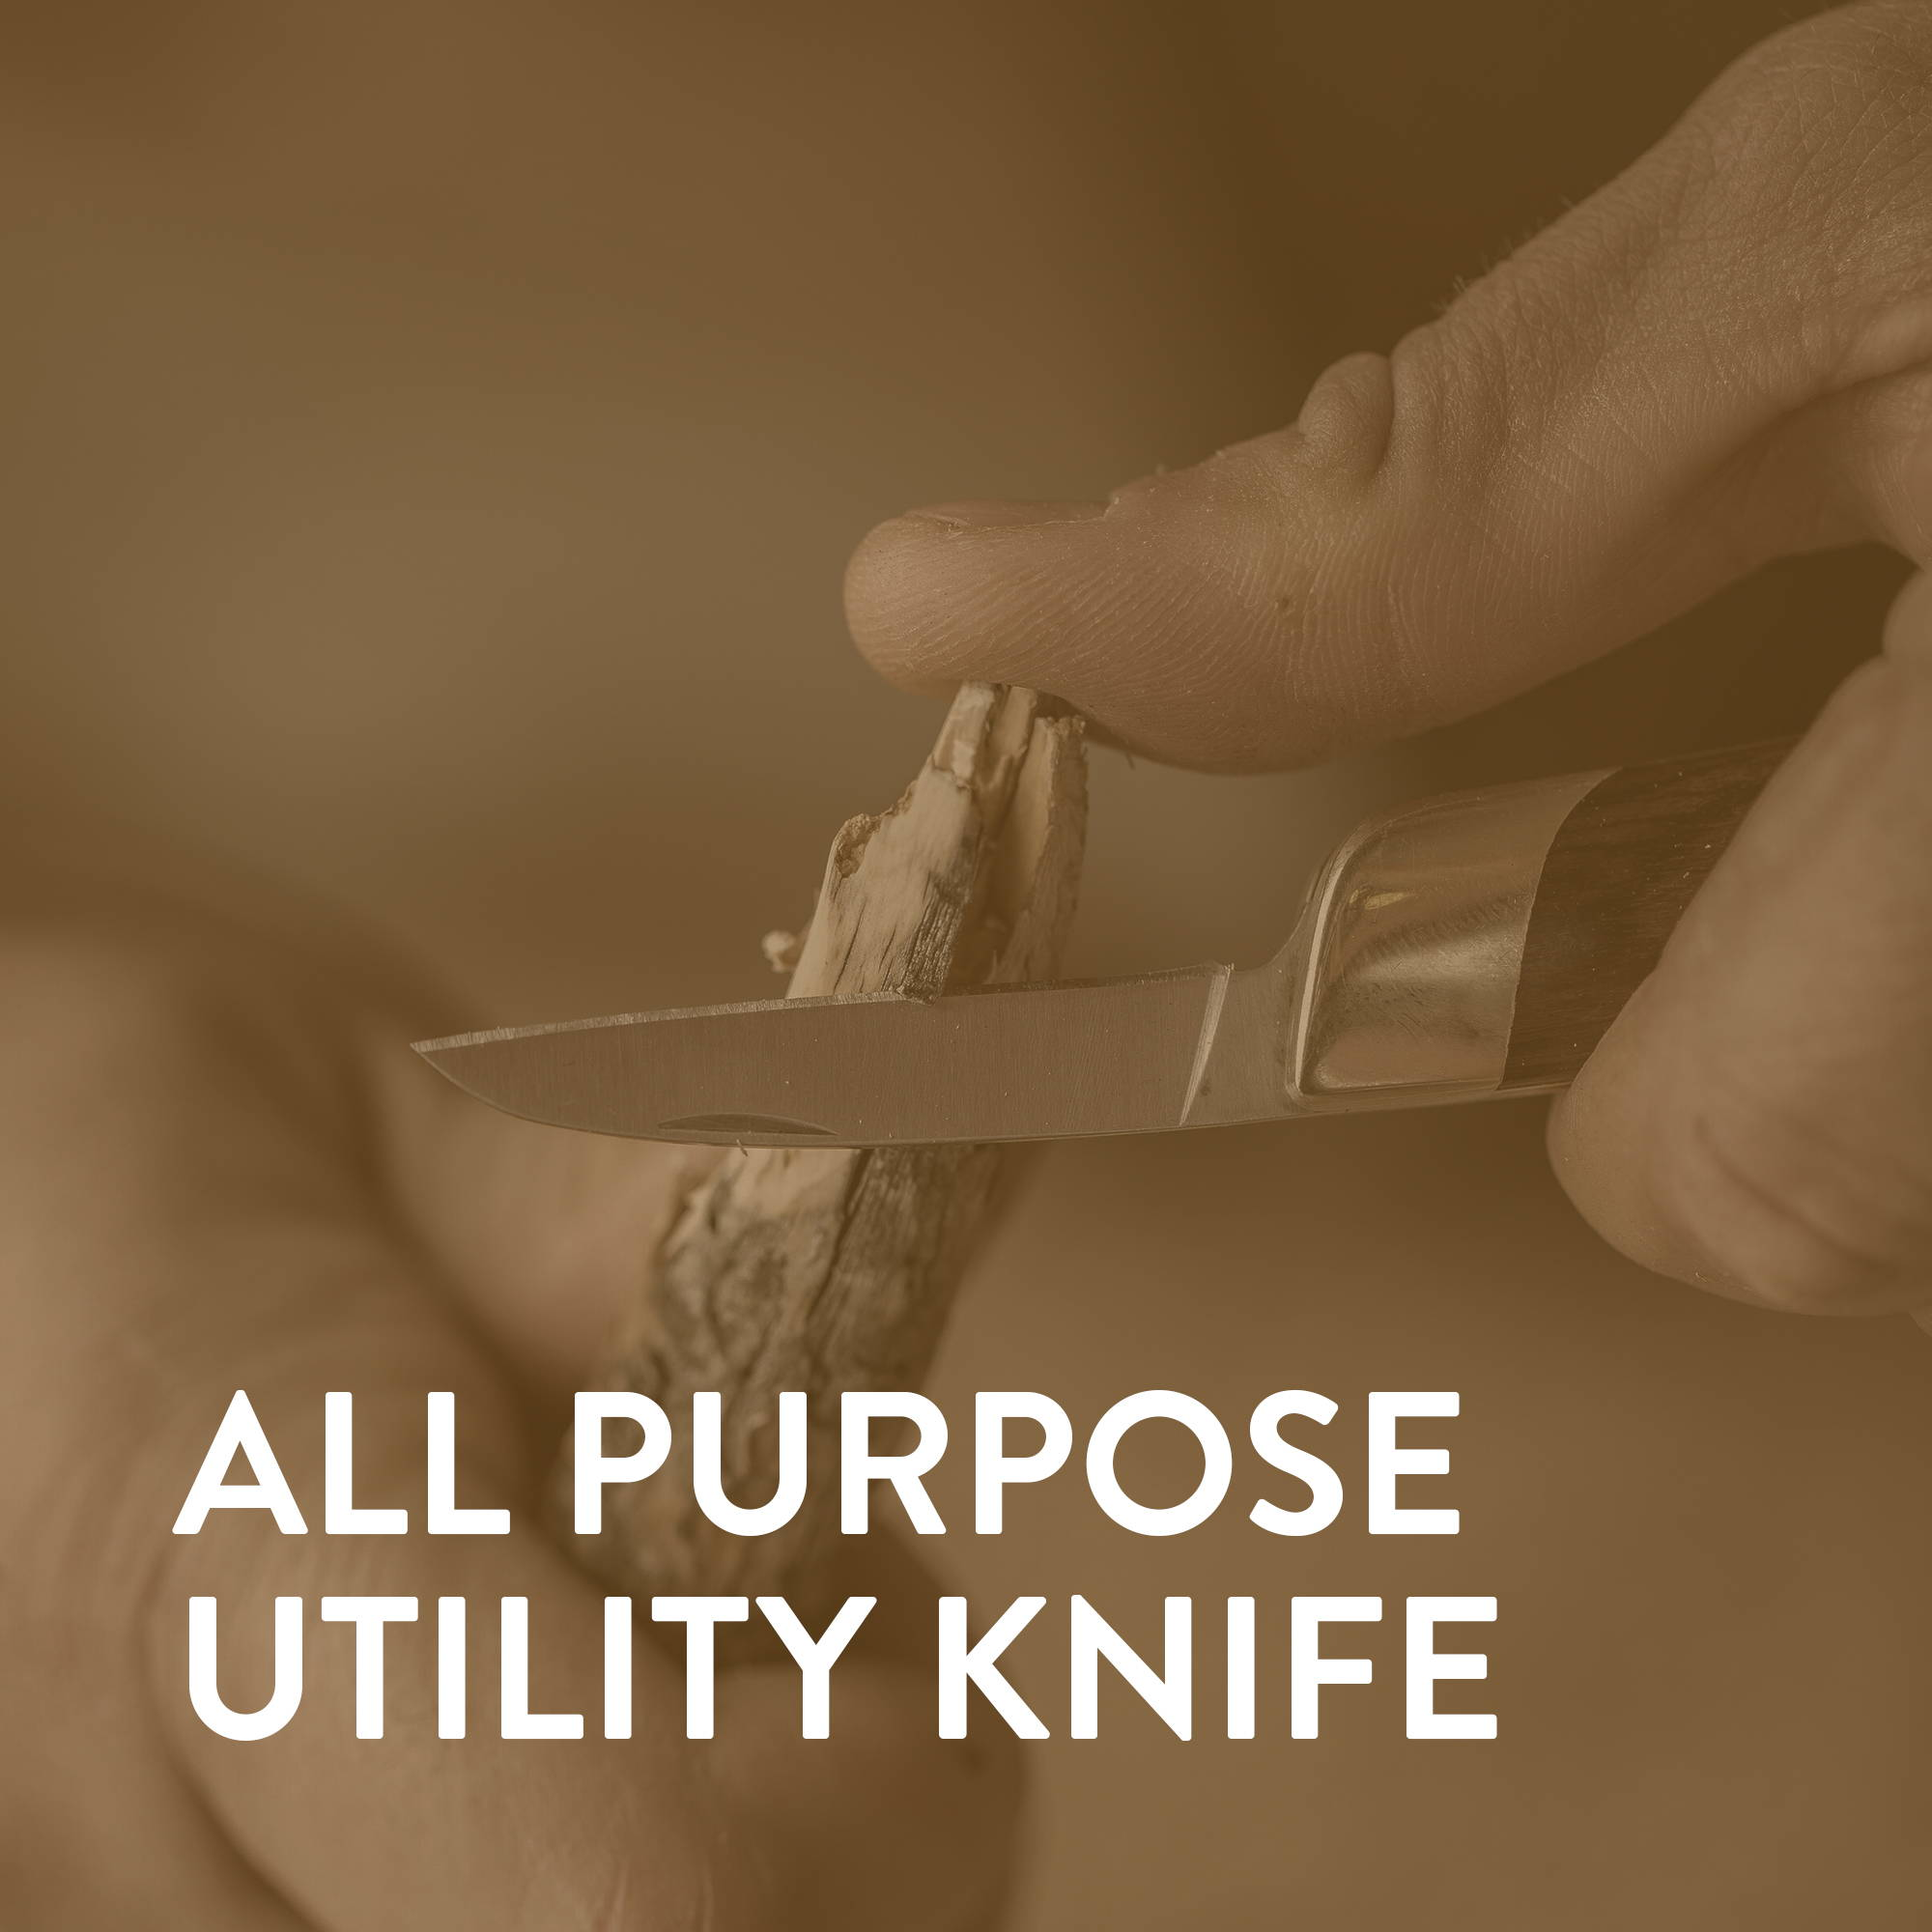 All Purpose Utility Knife